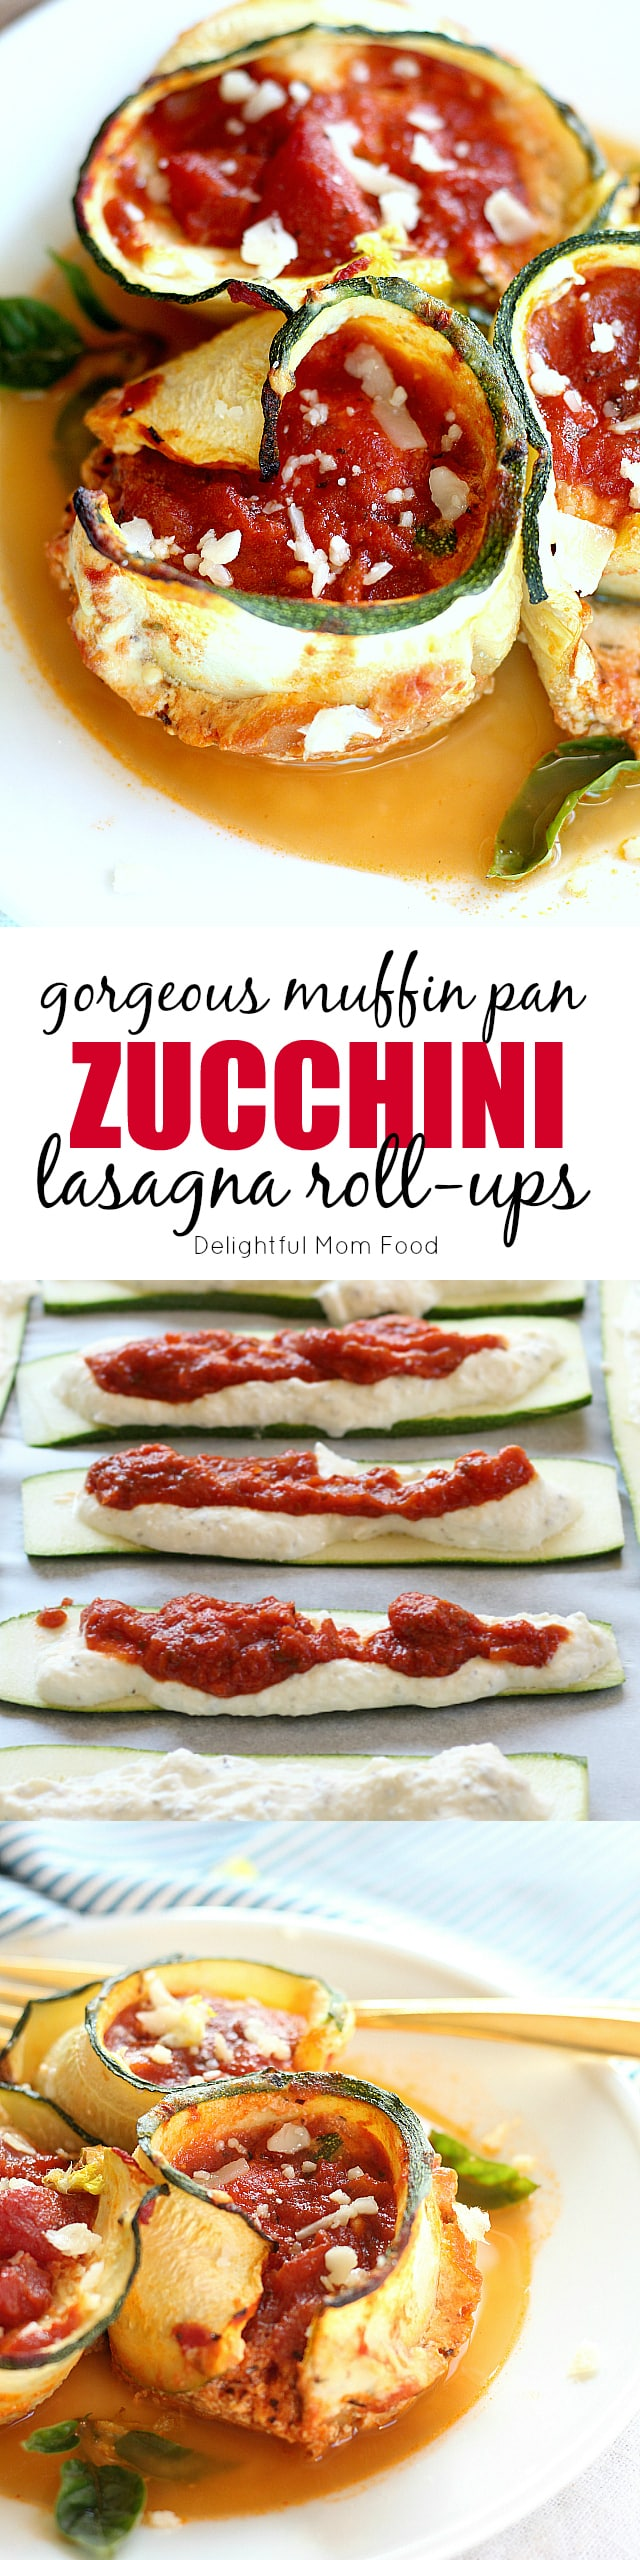 "Vegetarian zucchini lasagna rolls sliced into flat-shaped pasta shapes, layered with sauce, rolled and baked in a muffin pan! Easiest Italian ""lasagne"" dinner that is ready in less than 45 minutes and can be made ahead of time!"